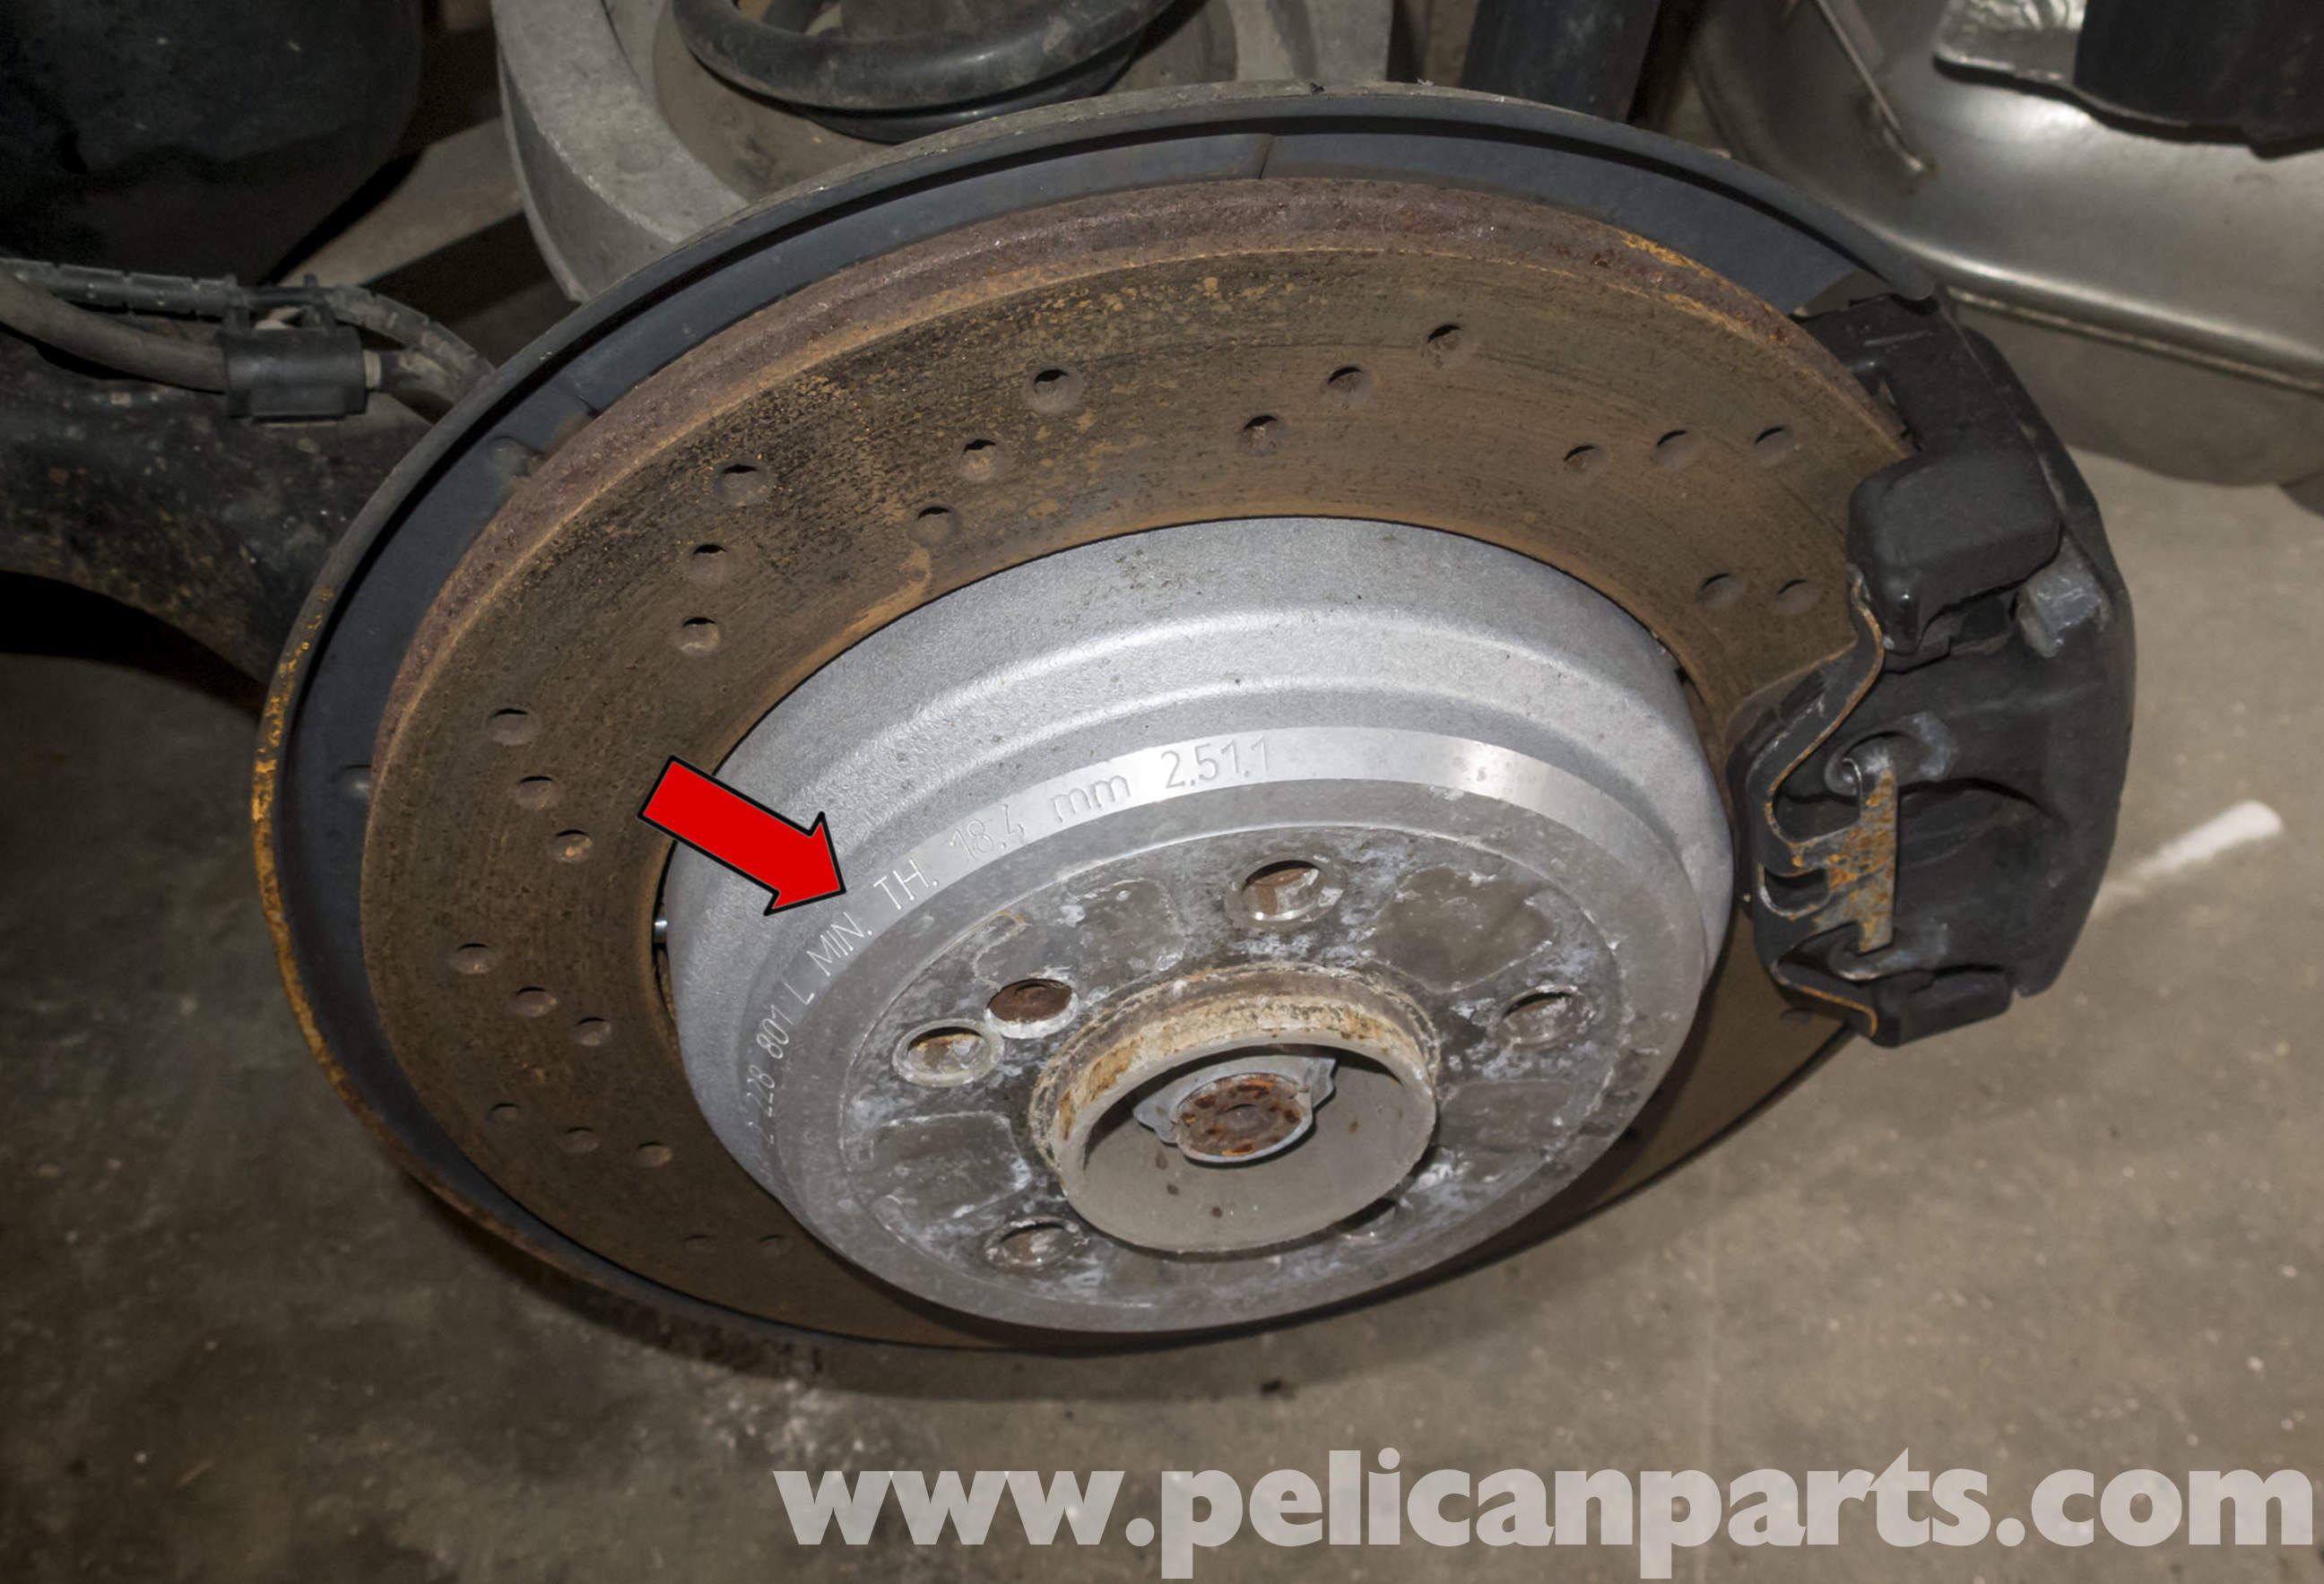 Pelican Technical Article Bmw Z4m Brake Rotor Replacement